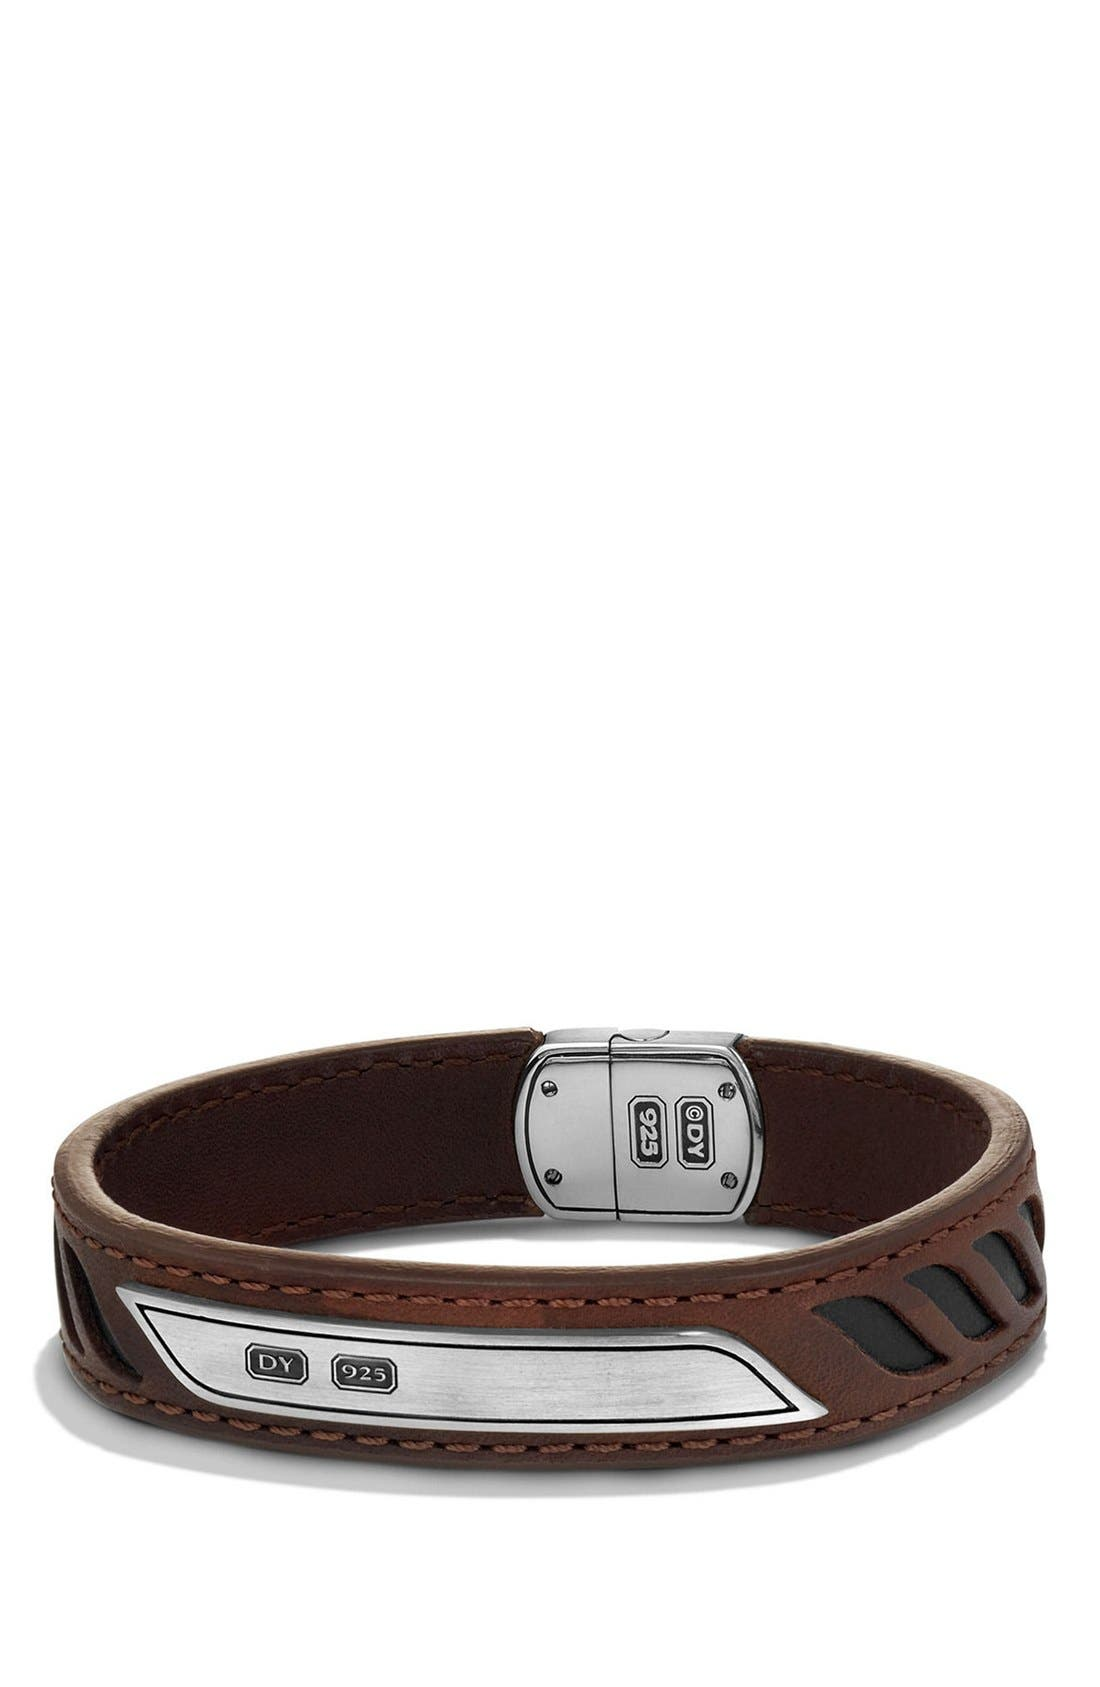 'Graphic Cable' Leather ID Bracelet,                         Main,                         color, Silver/ Brown